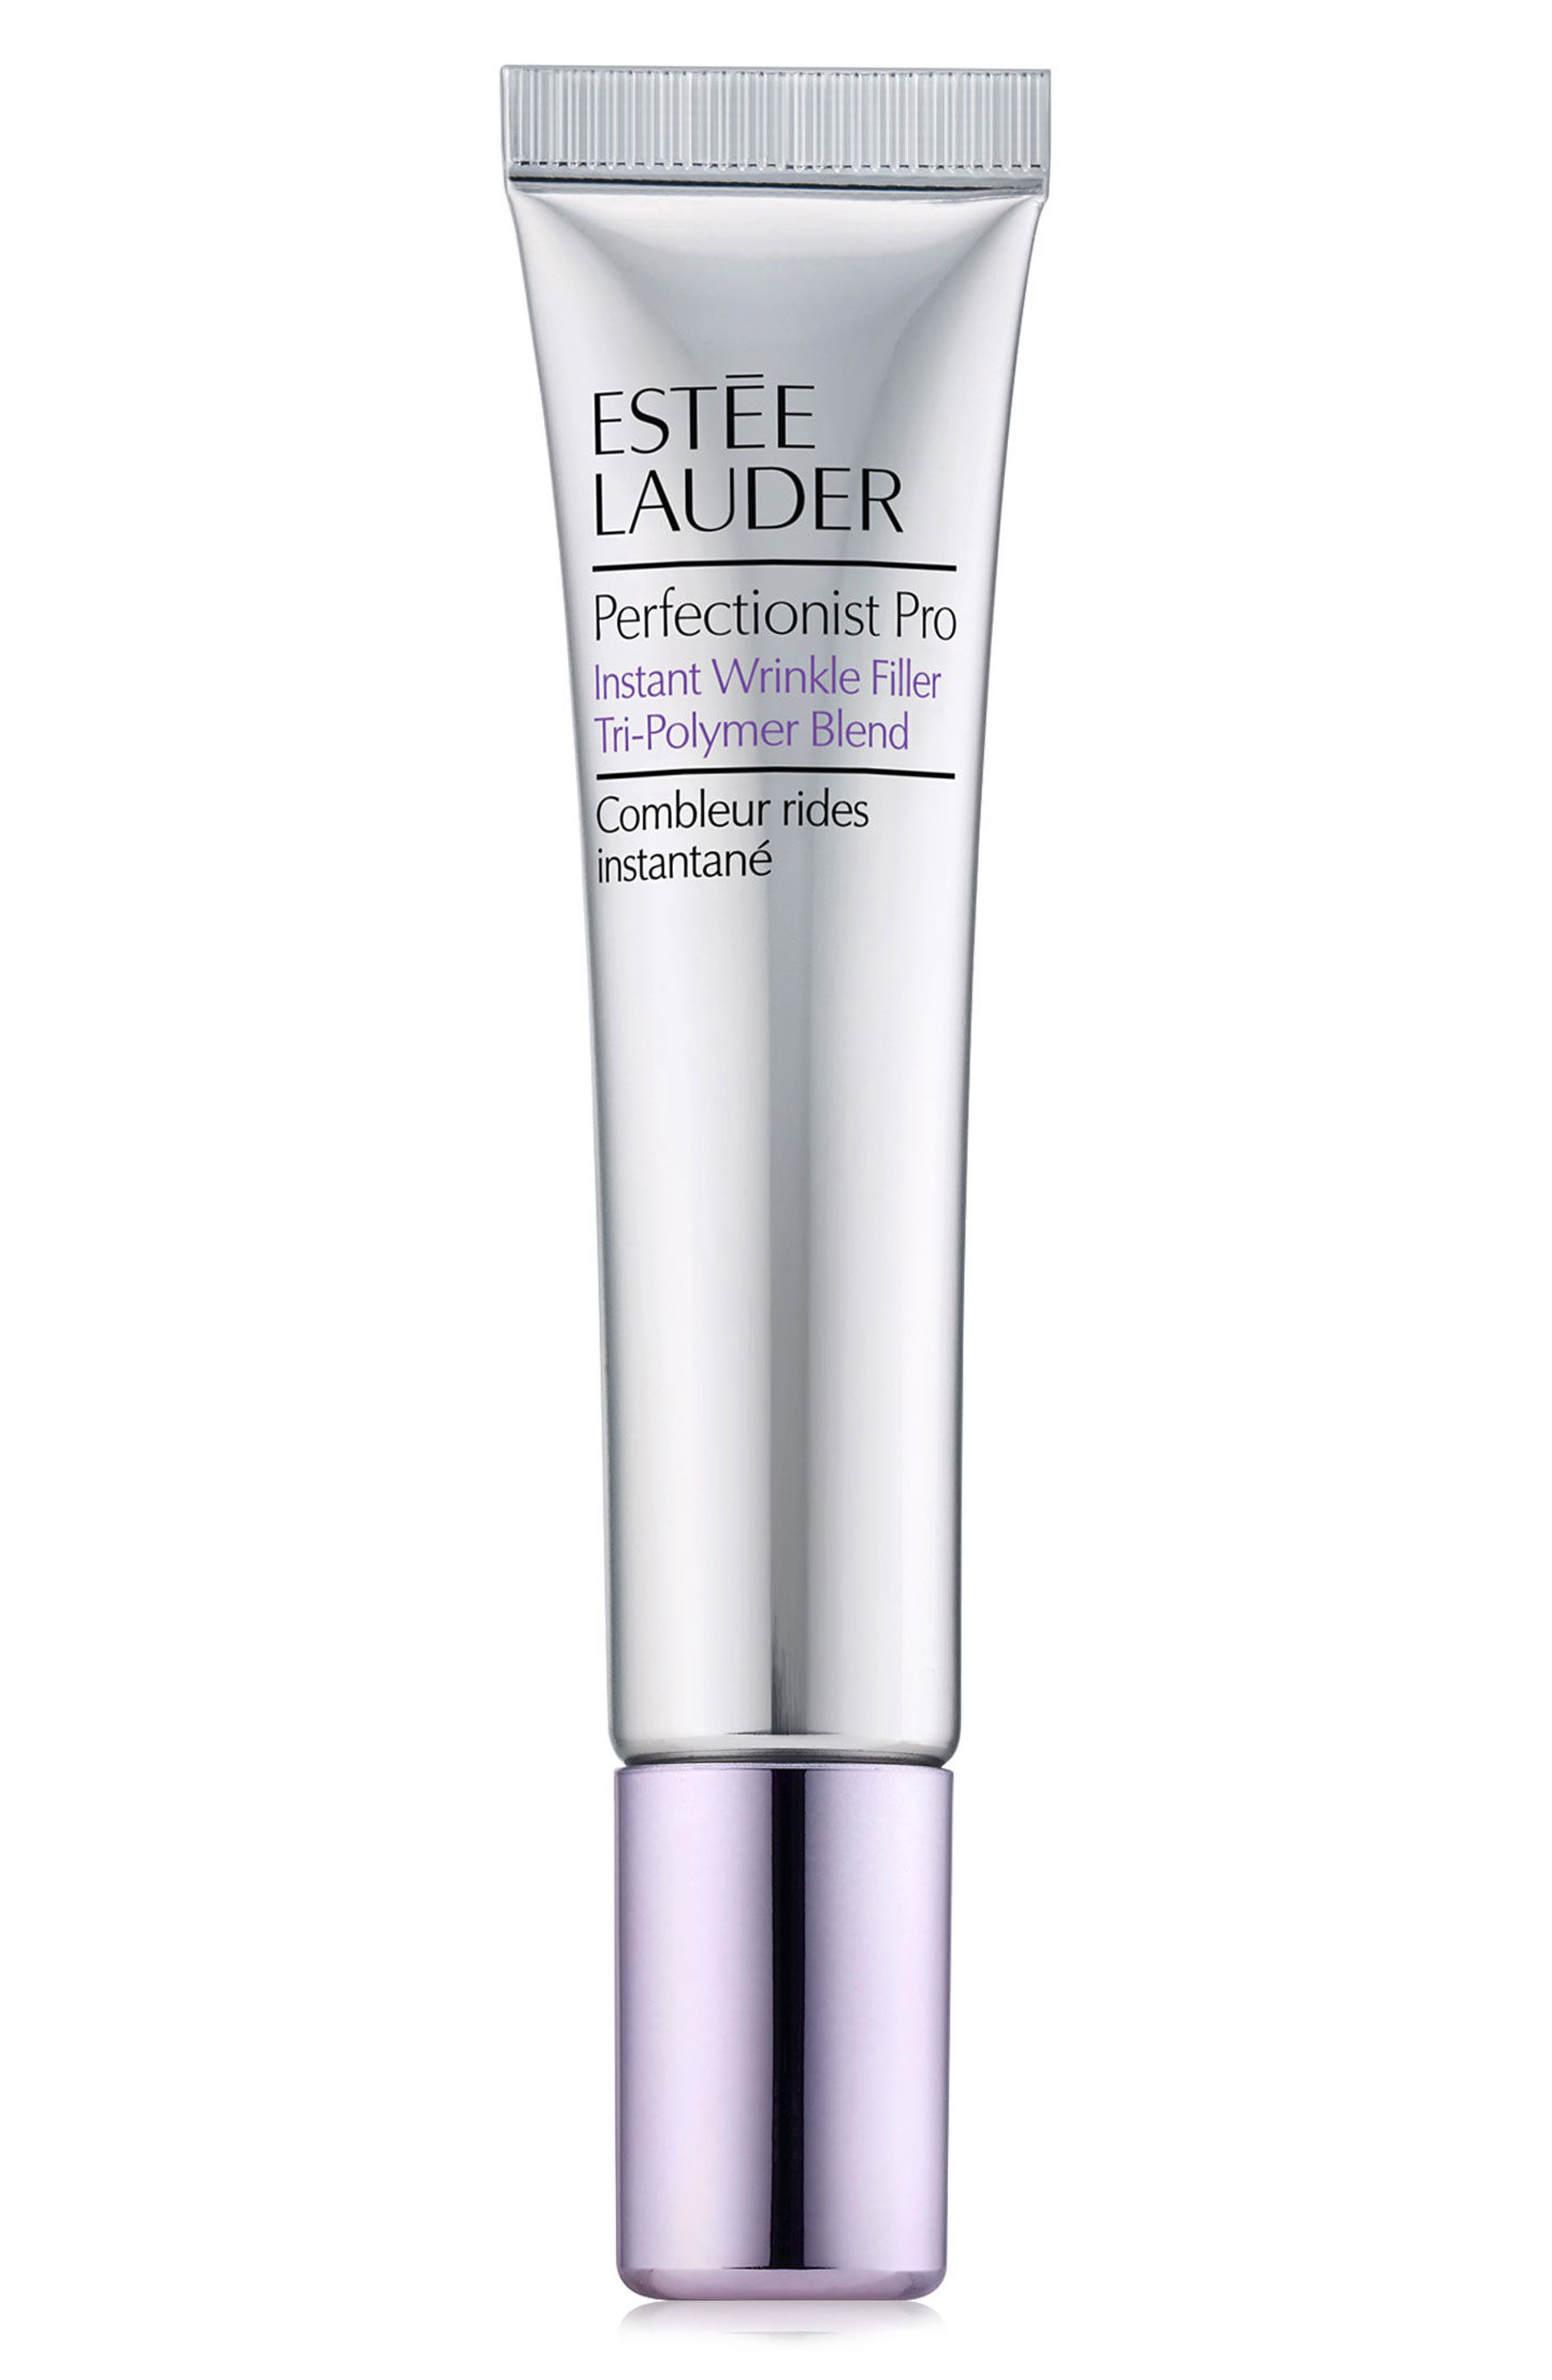 Perfectionist Pro Instant Wrinkle Filler With Tri-Polymer Blend Spot Treatment Serum